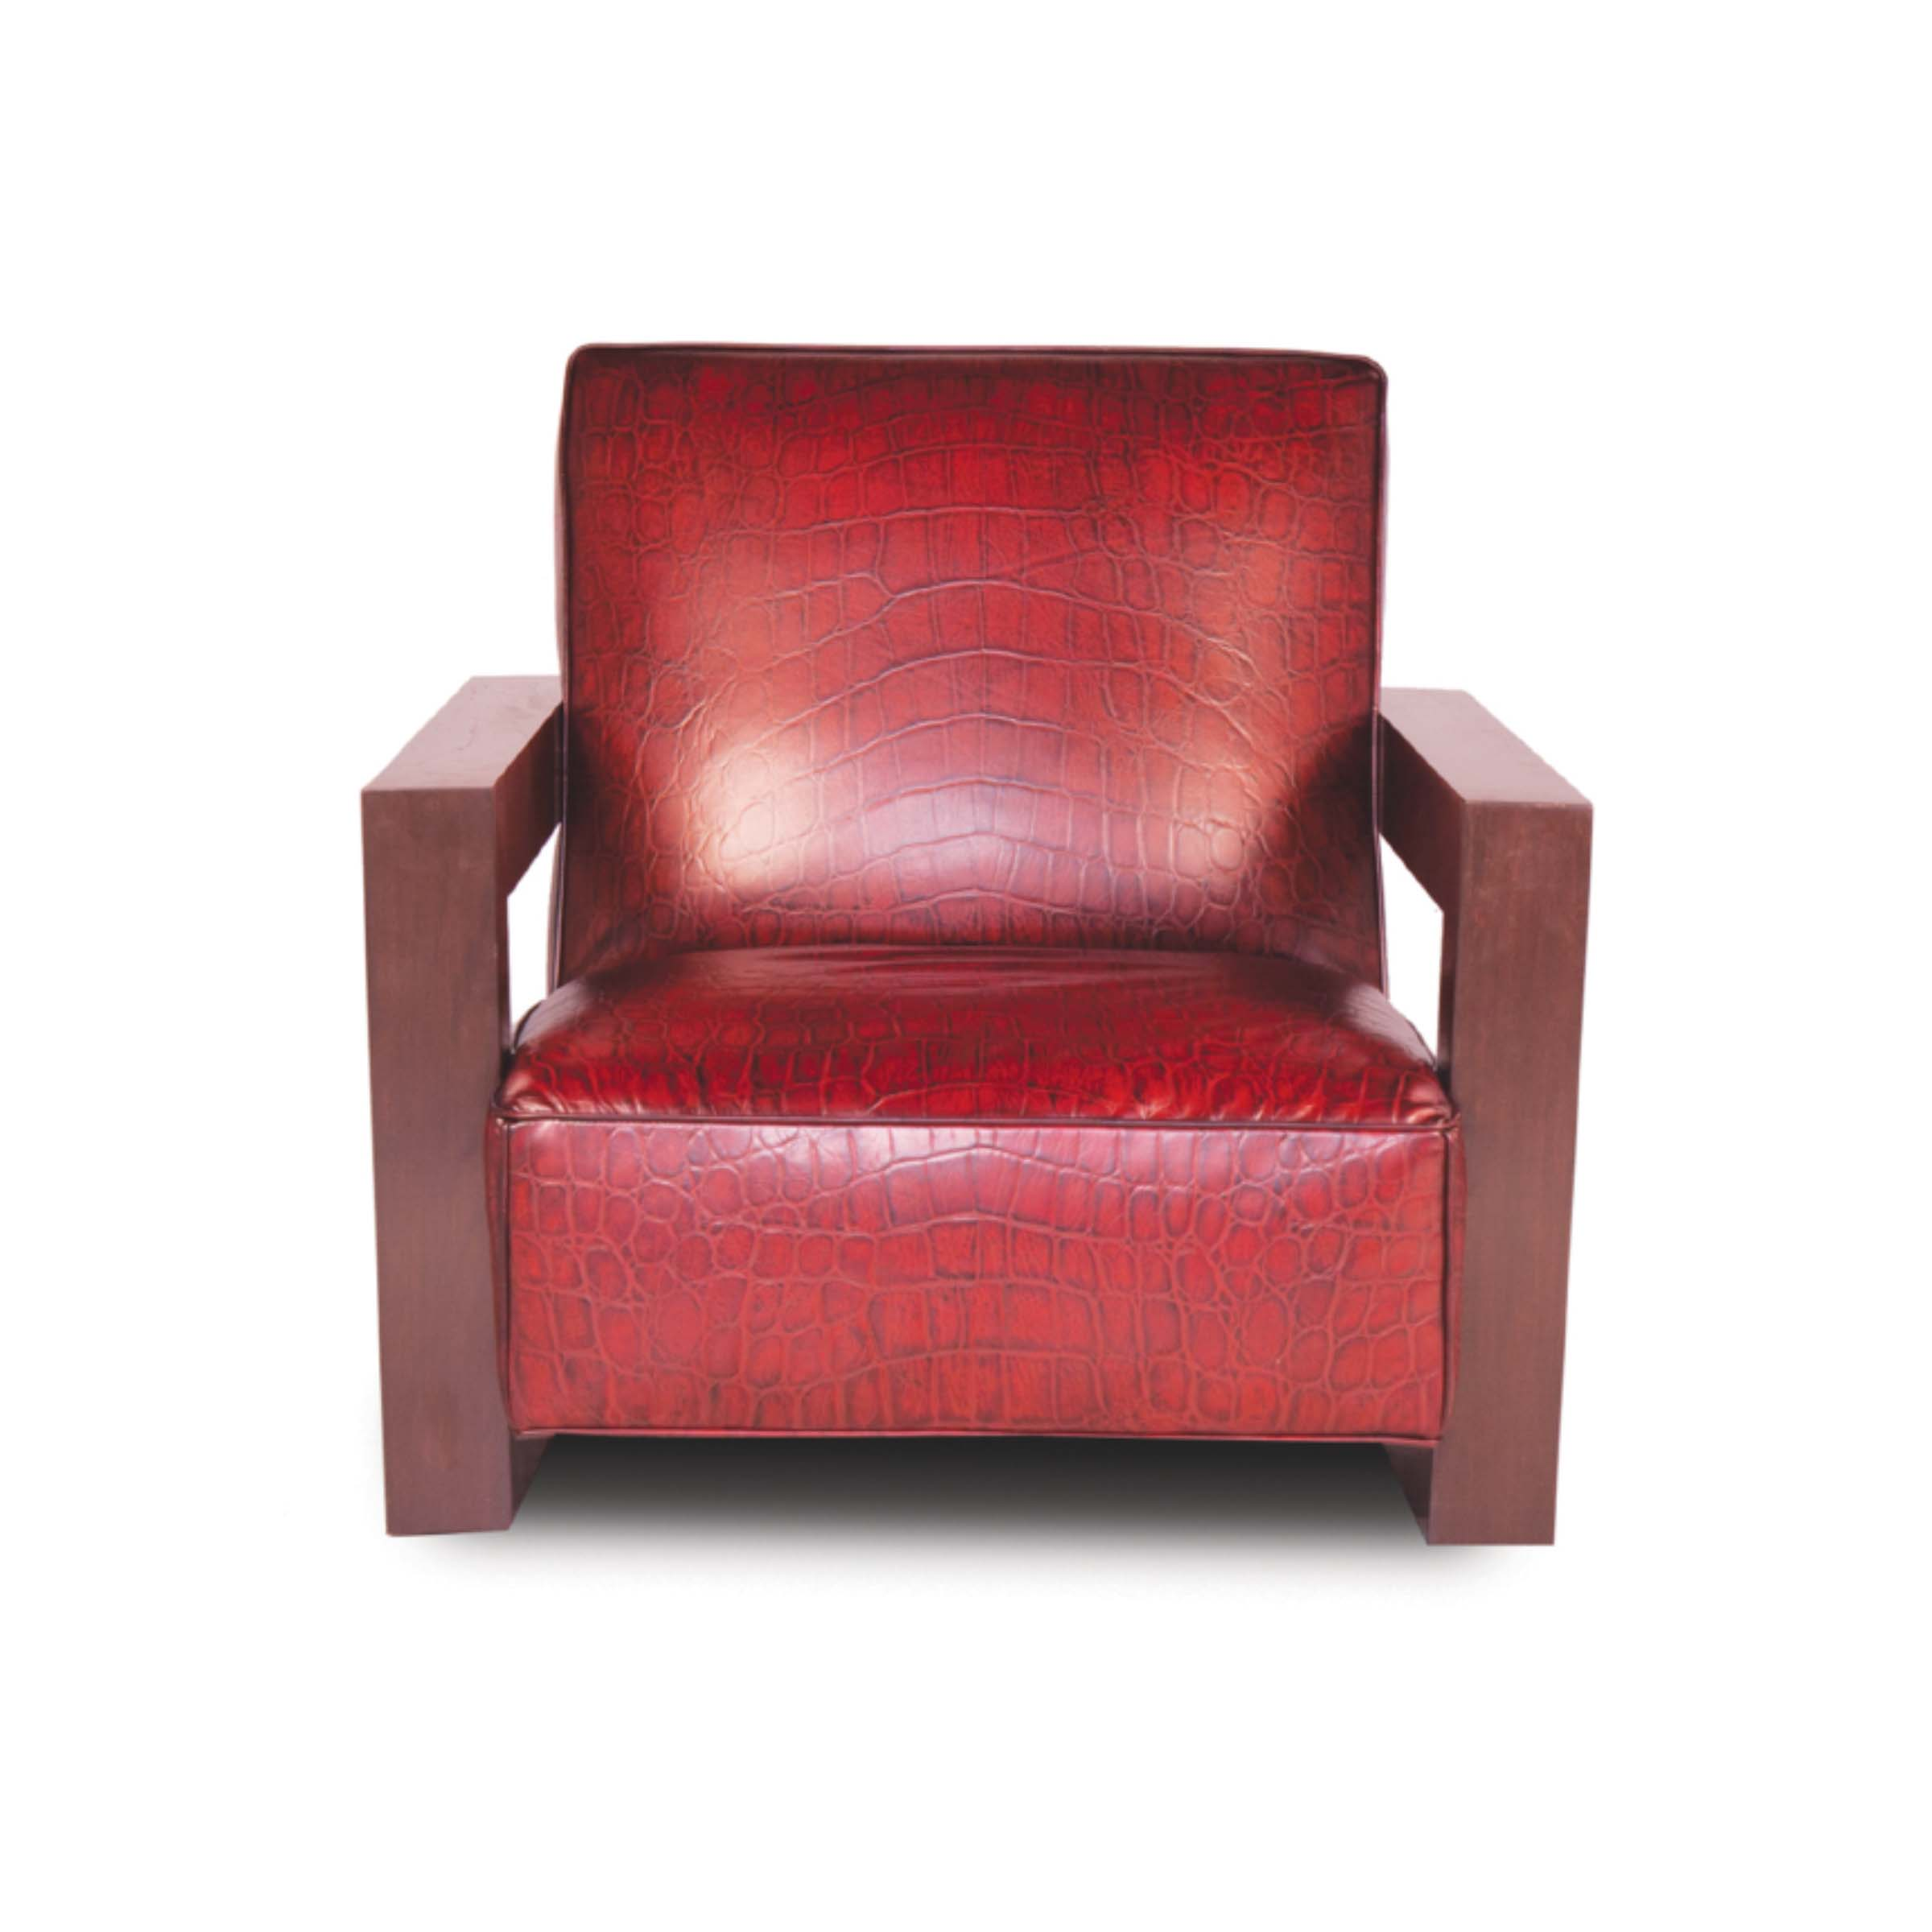 LOFTY - 1E Accent Chair Maestro Artisano Lava Terrapin Hand Tooled Leather